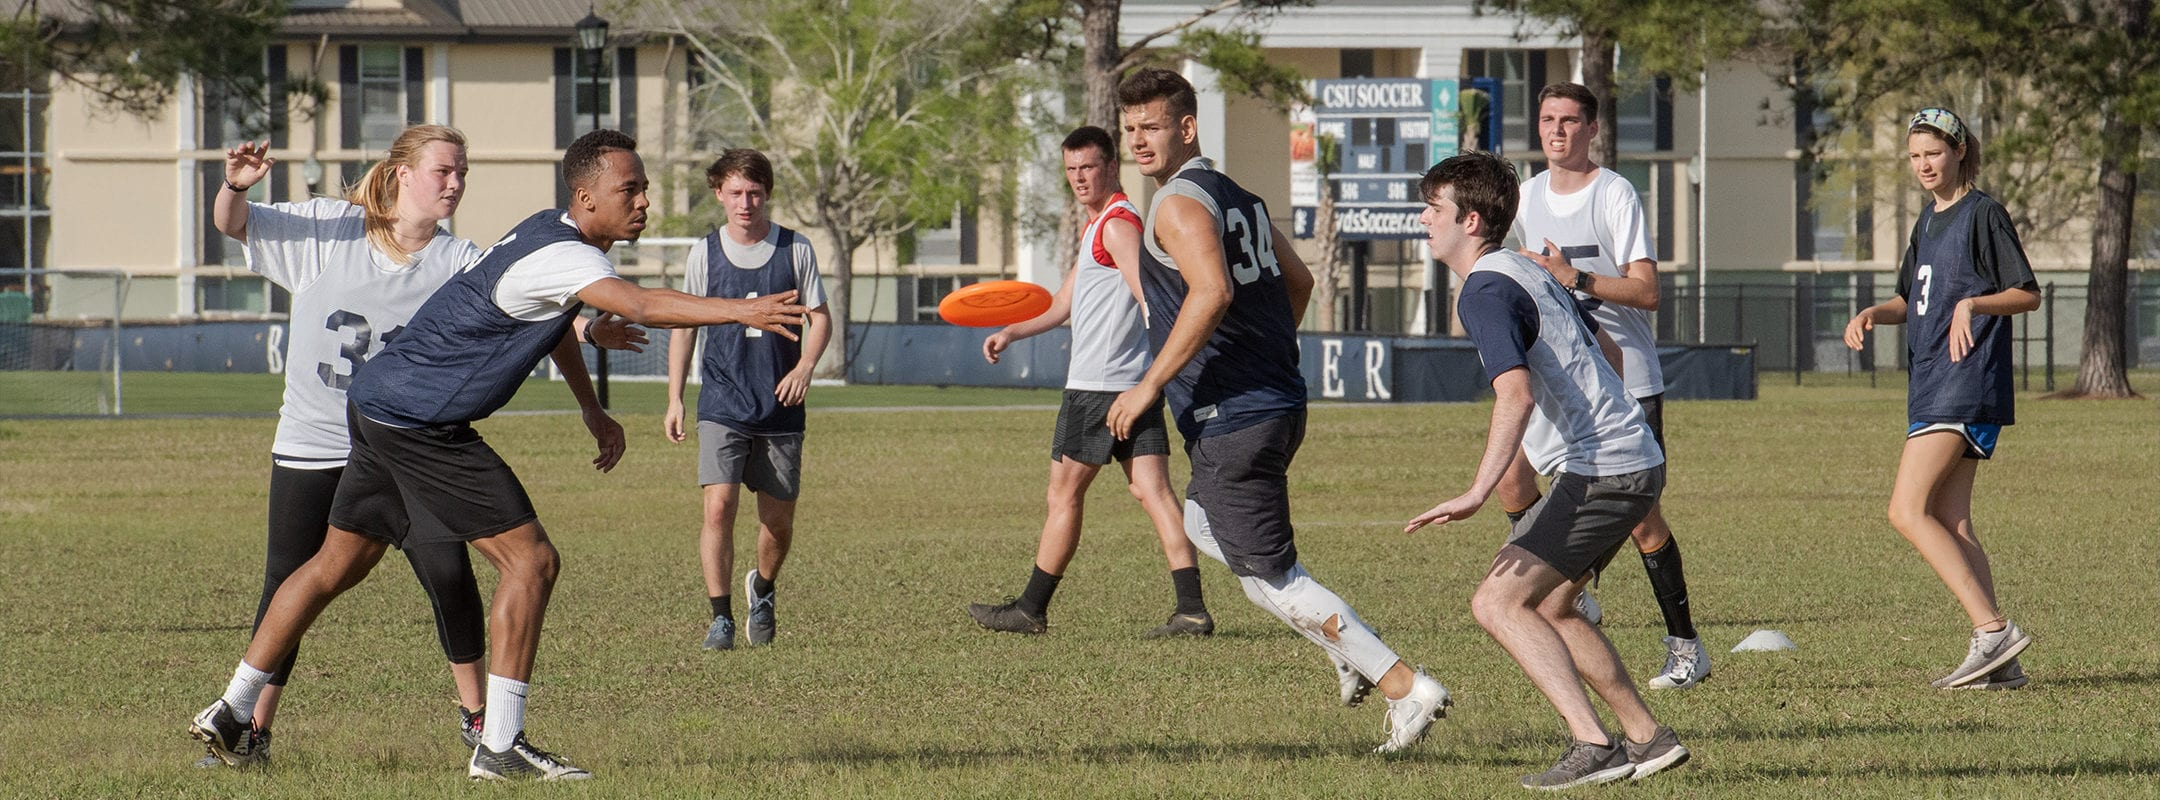 Students on campus playing intramural frisbee football.